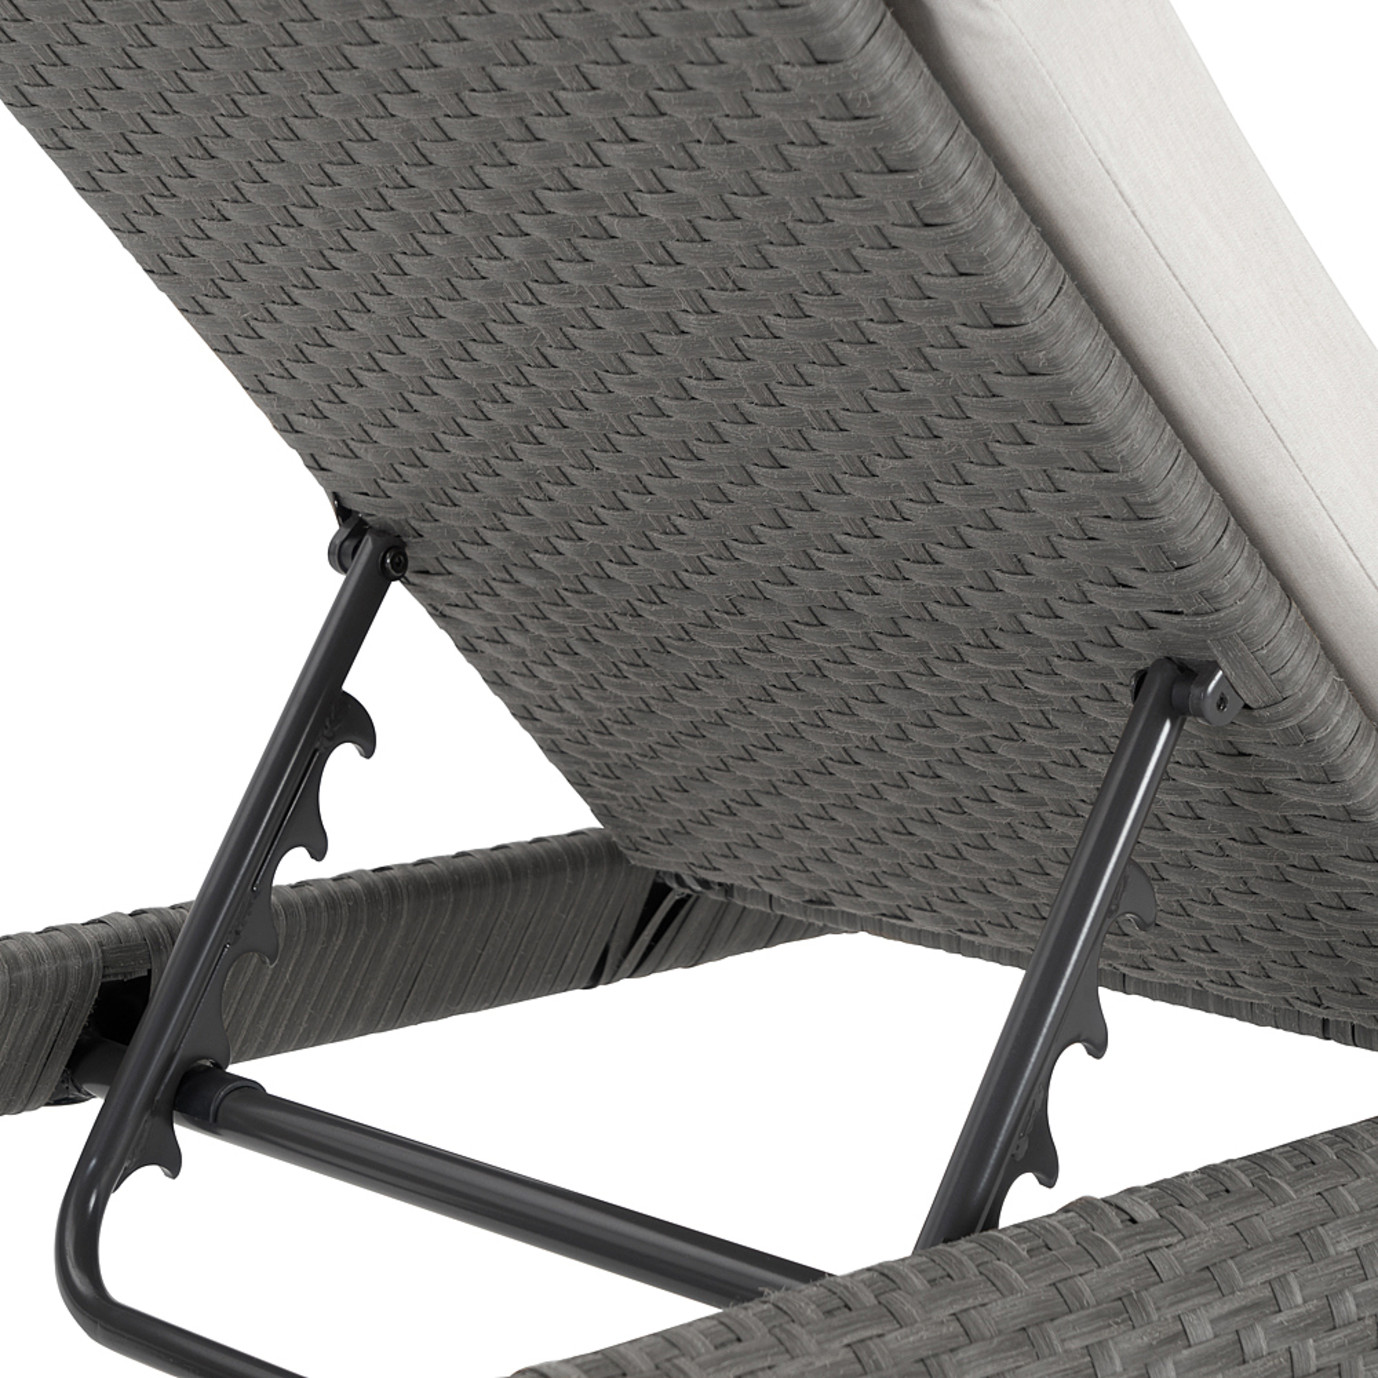 Vistano™ Chaise Lounges